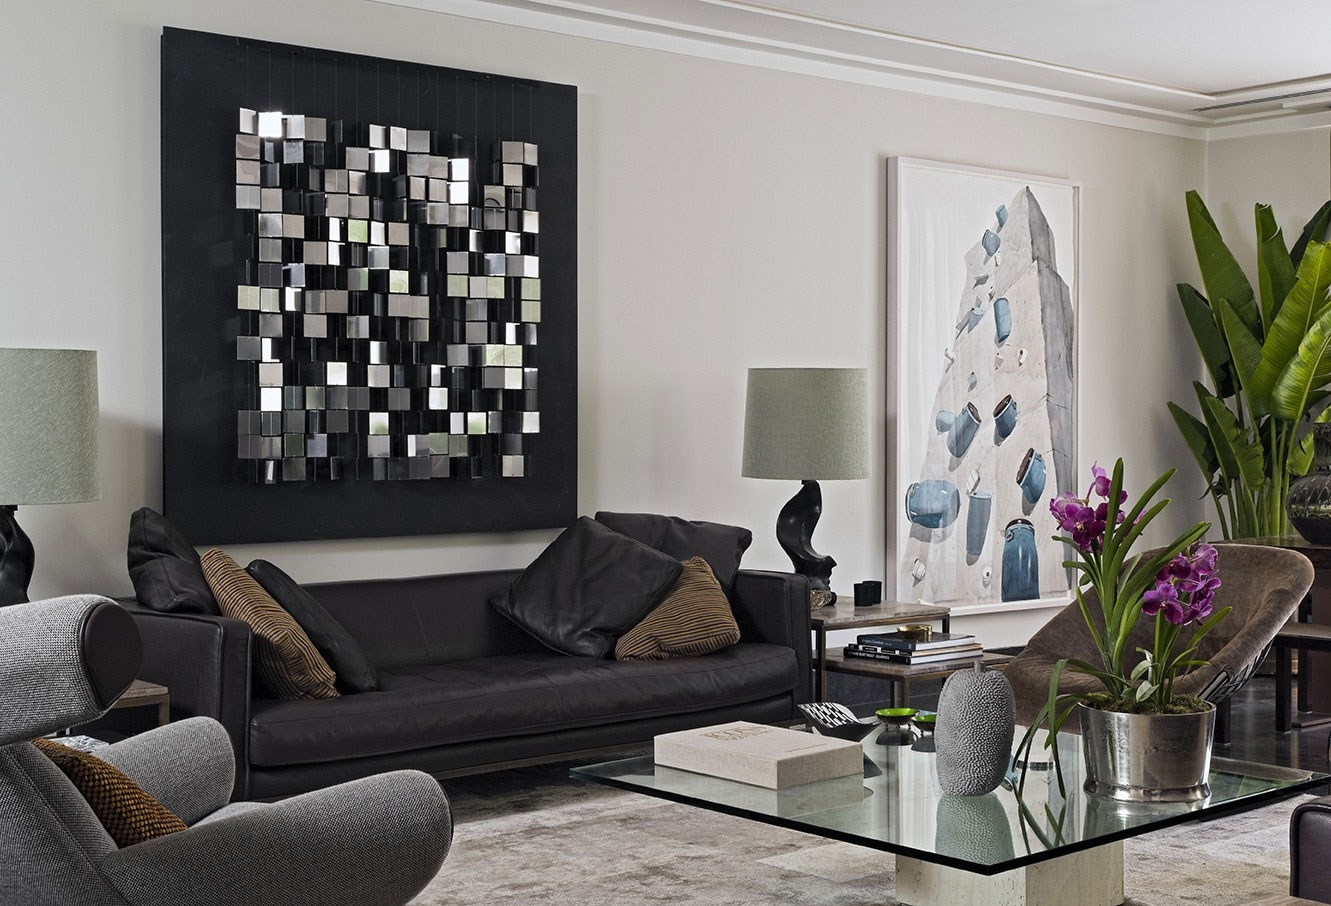 Mozaic Wall Art Decor For Living Room : Ideas Of Wall Art Decor Intended For Most Current Wall Accents For Small Living Room (View 2 of 15)